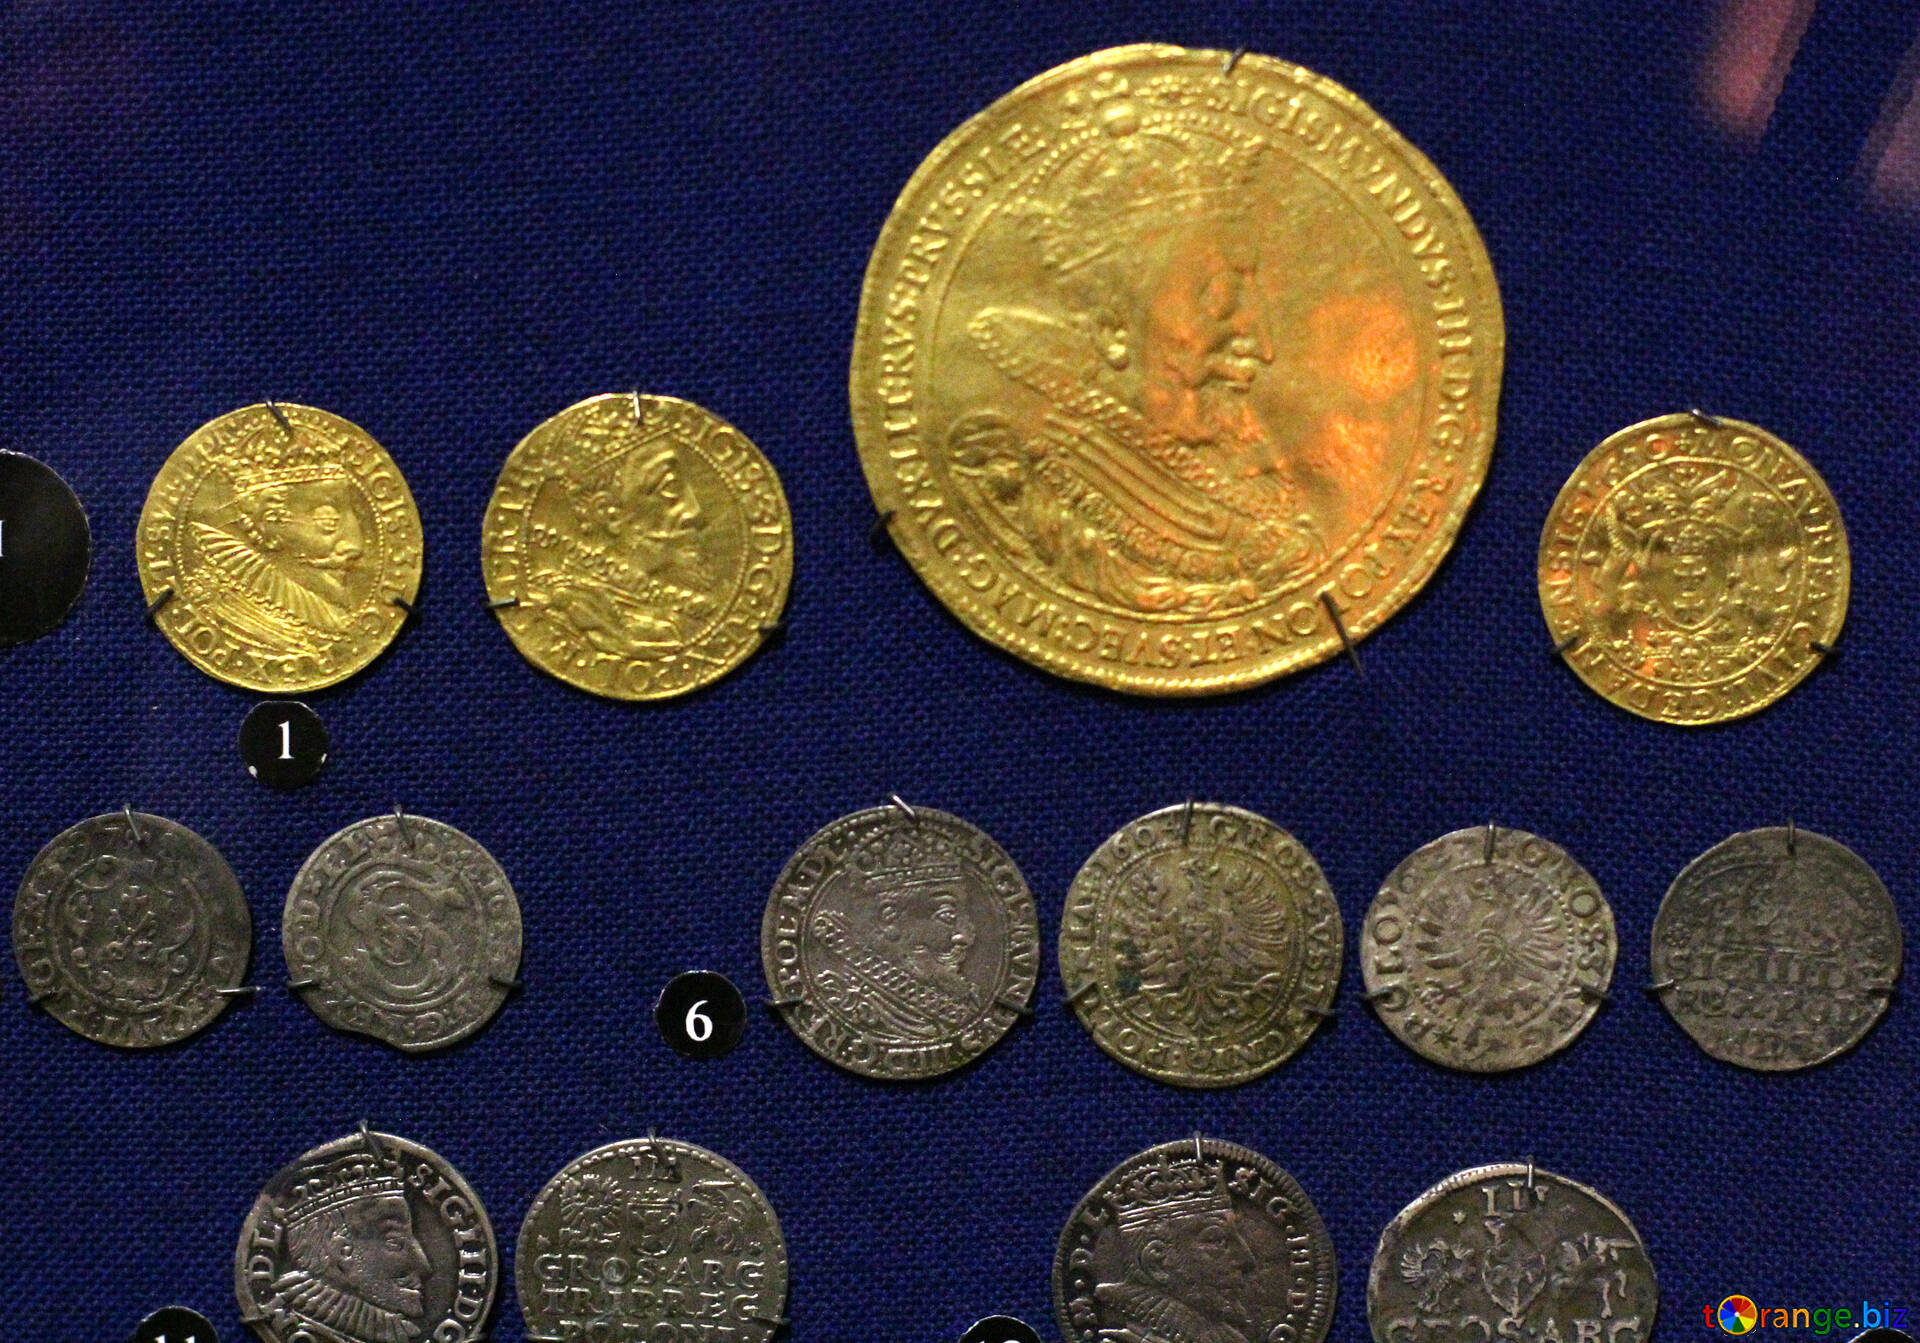 Download Free Image Ancient Coins Of Gold And Silver In HD Wallpaper Size 1920px